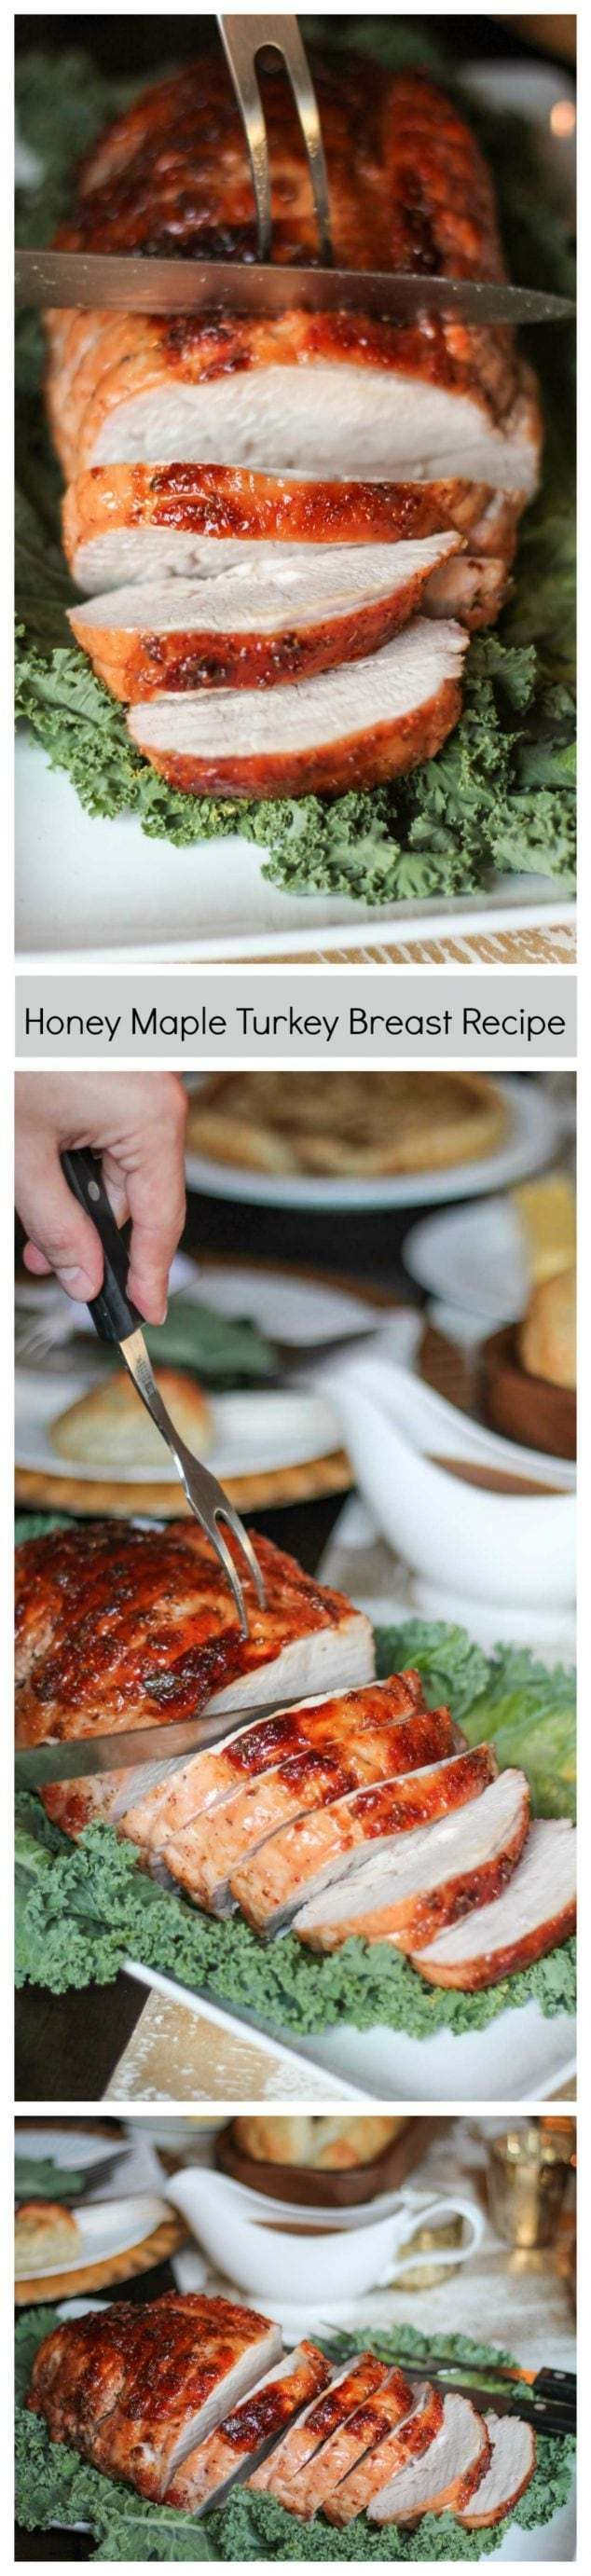 The easiest way to prepare turkey on Thanksgiving day! This delicious foolproof Honey Maple Turkey Breast recipe will be the star of the show on Thanksgiving. Hosting a smaller crowd for Thanksgiving? Not a fan of dark meat? Make this Honey Maple Turkey Breast instead of a full turkey. A five-pound turkey breast will serve at (read more)